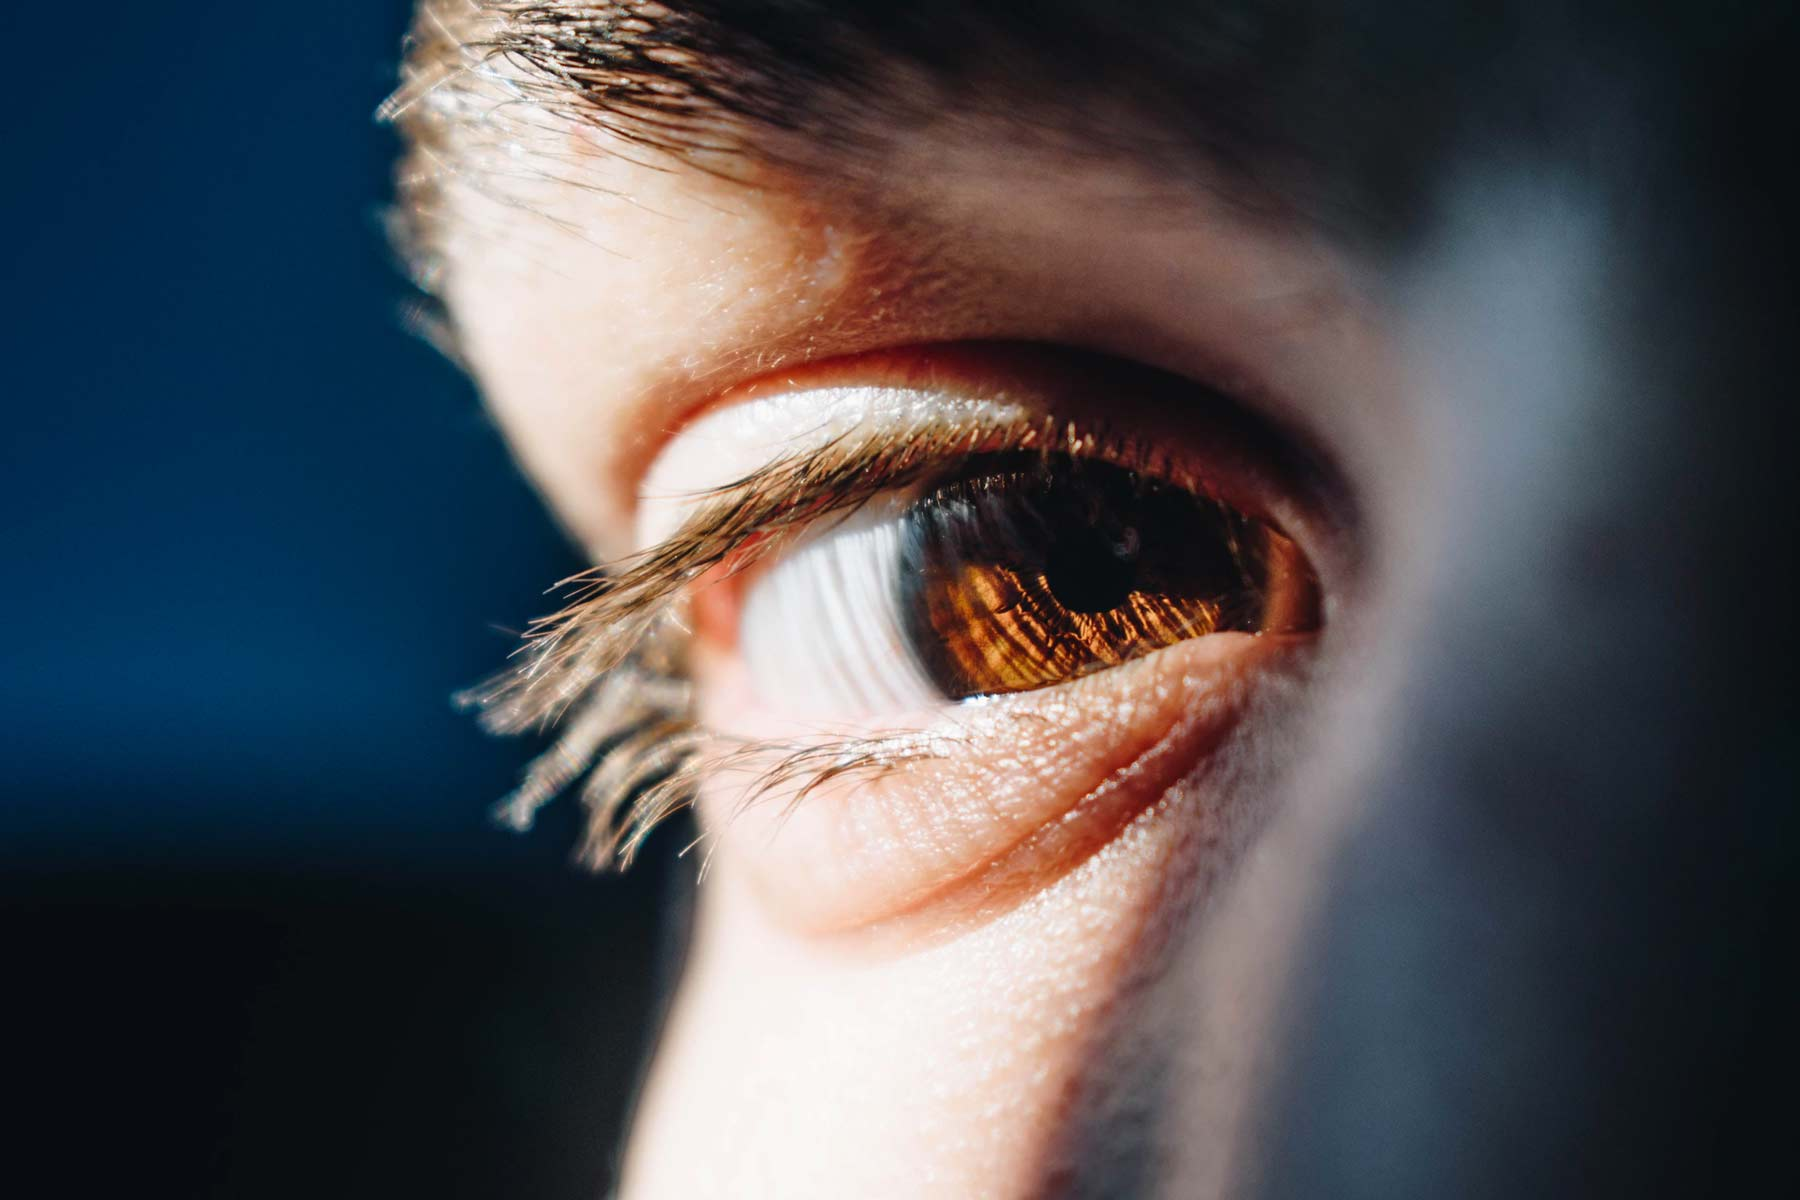 Close up of a man's eye